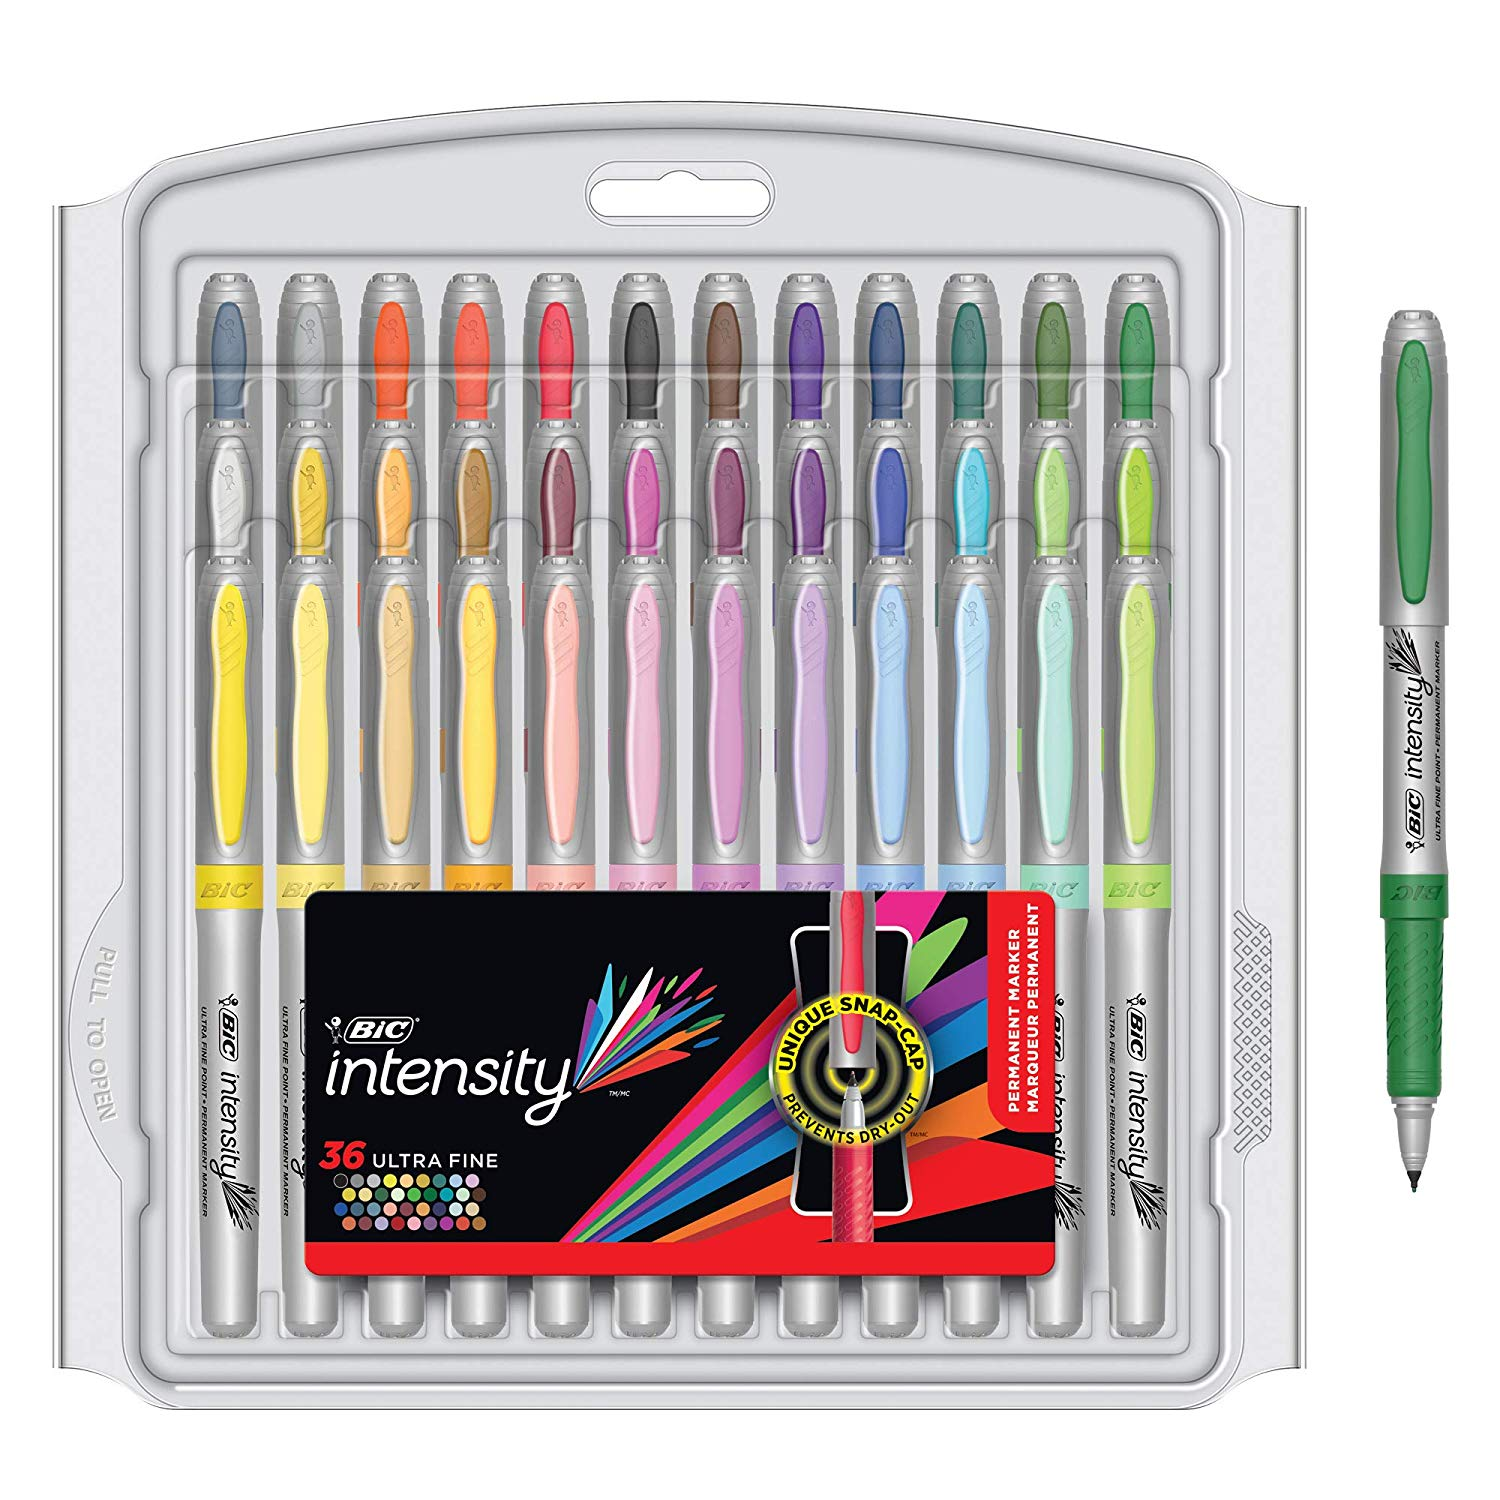 BIC Intensity Fashion Permanent Markers